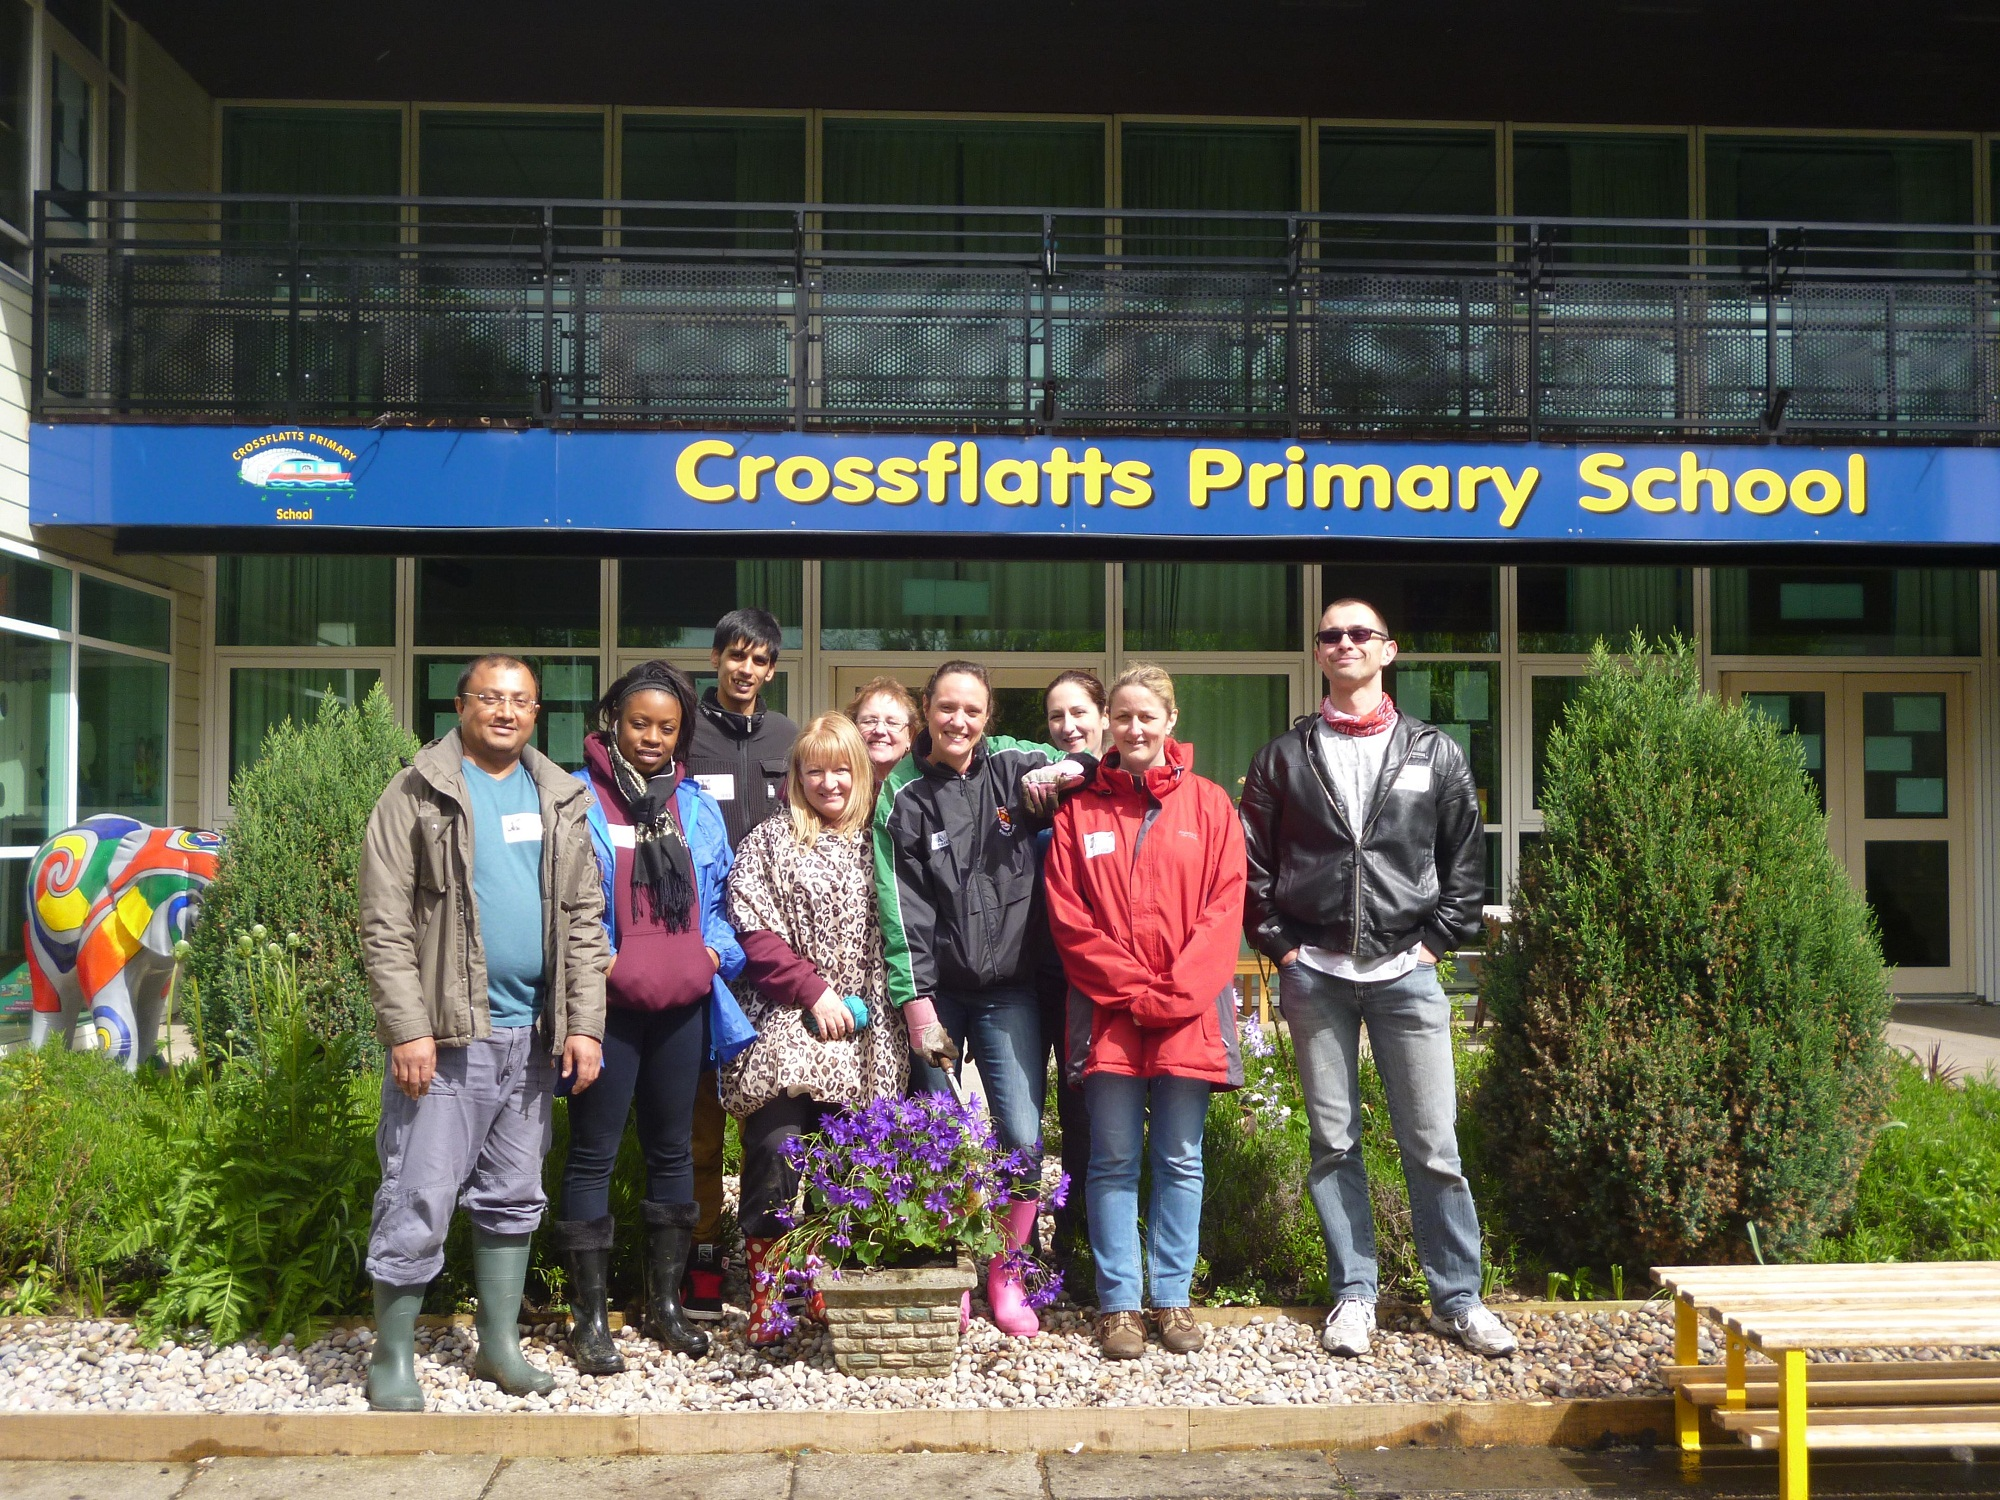 British Gas volunteers carrying out planting at Crossflatts Primary School